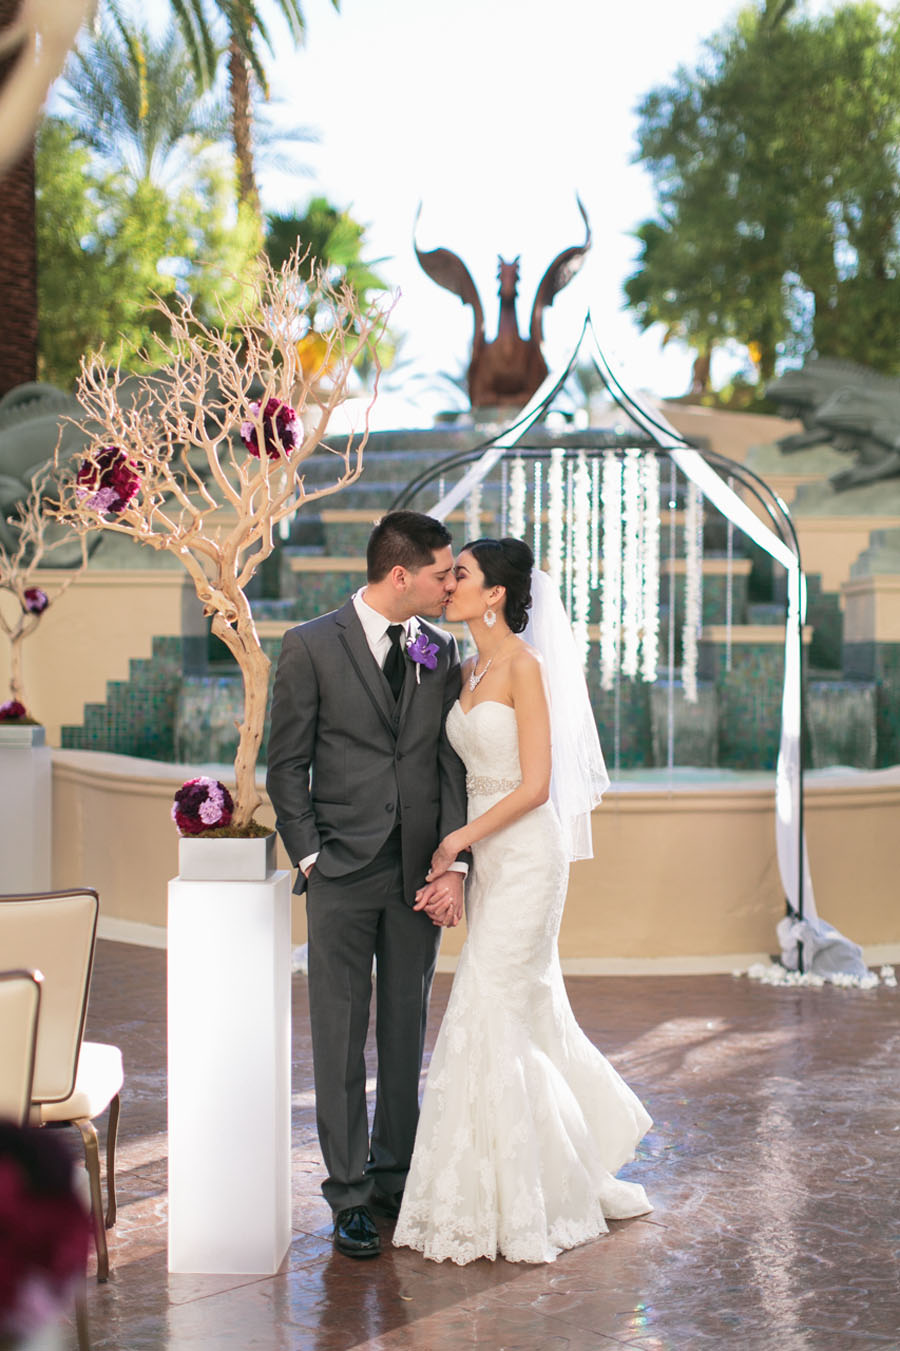 Katherine & Jared - Wedding at the Four Seasons Las Vegas.   Las Vegas Wedding Planner Andrea Eppolito.  Photography by Meg Ruth.  Floral and Decor by Naakiti Floral.